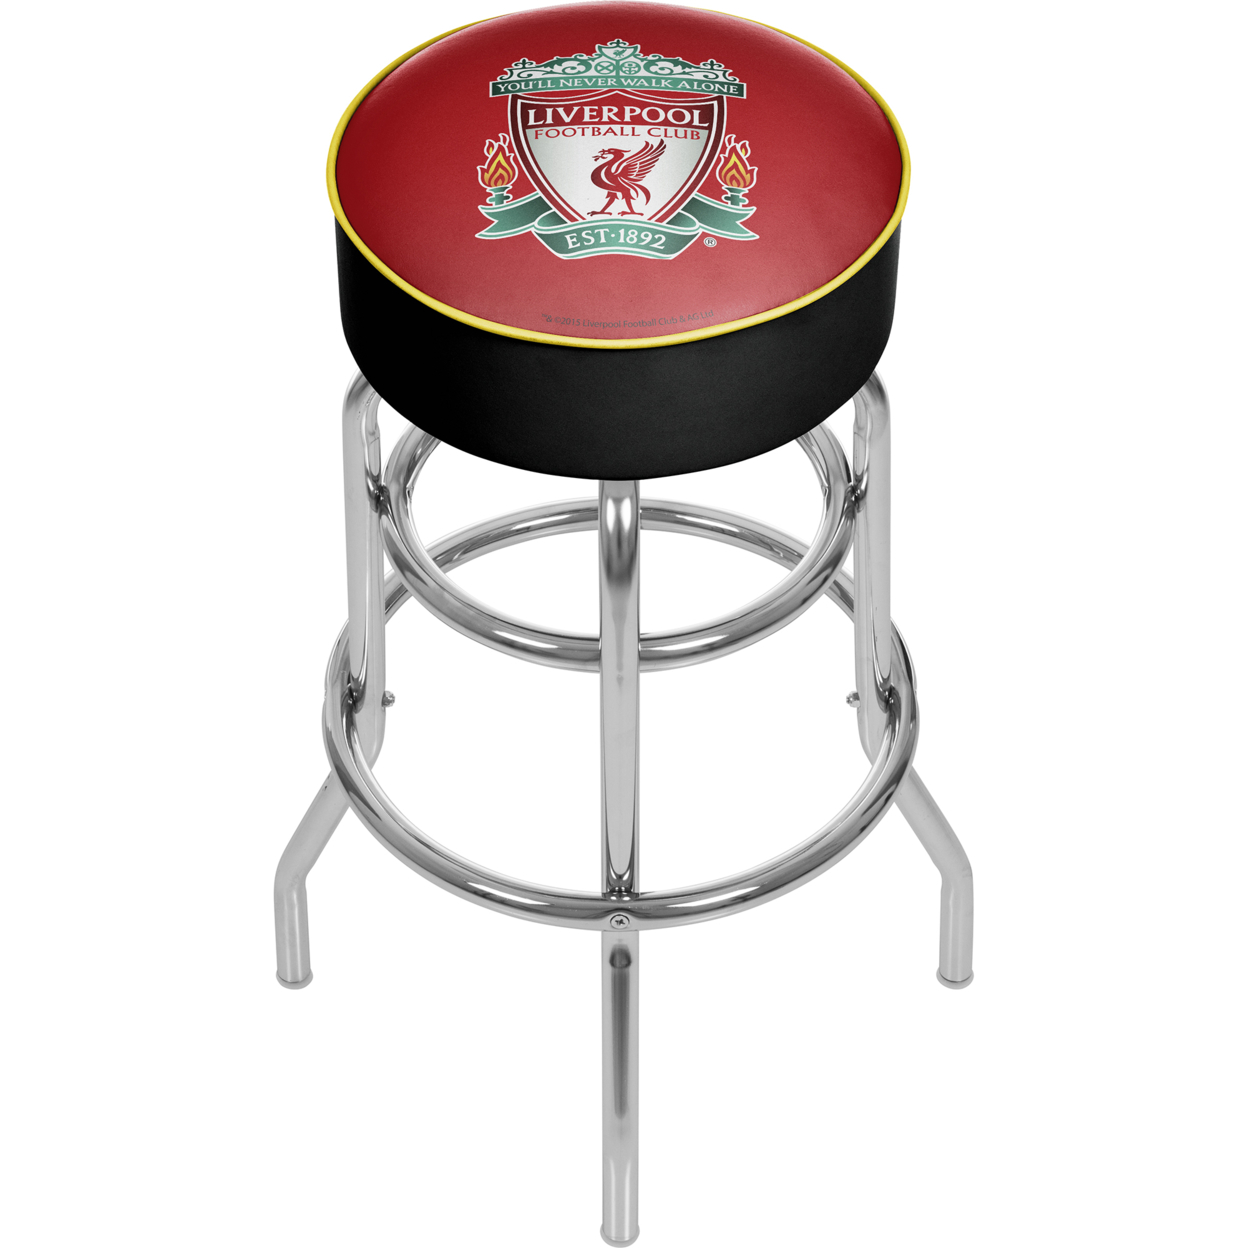 Premier League Liverpool Football Club Chrome Padded Swivel Bar Stool 30 Inches High 3km wisp long range outdoor cpe wifi router 5 8ghz wireless ap wifi repeater access point wifi extender bridge client router page 9